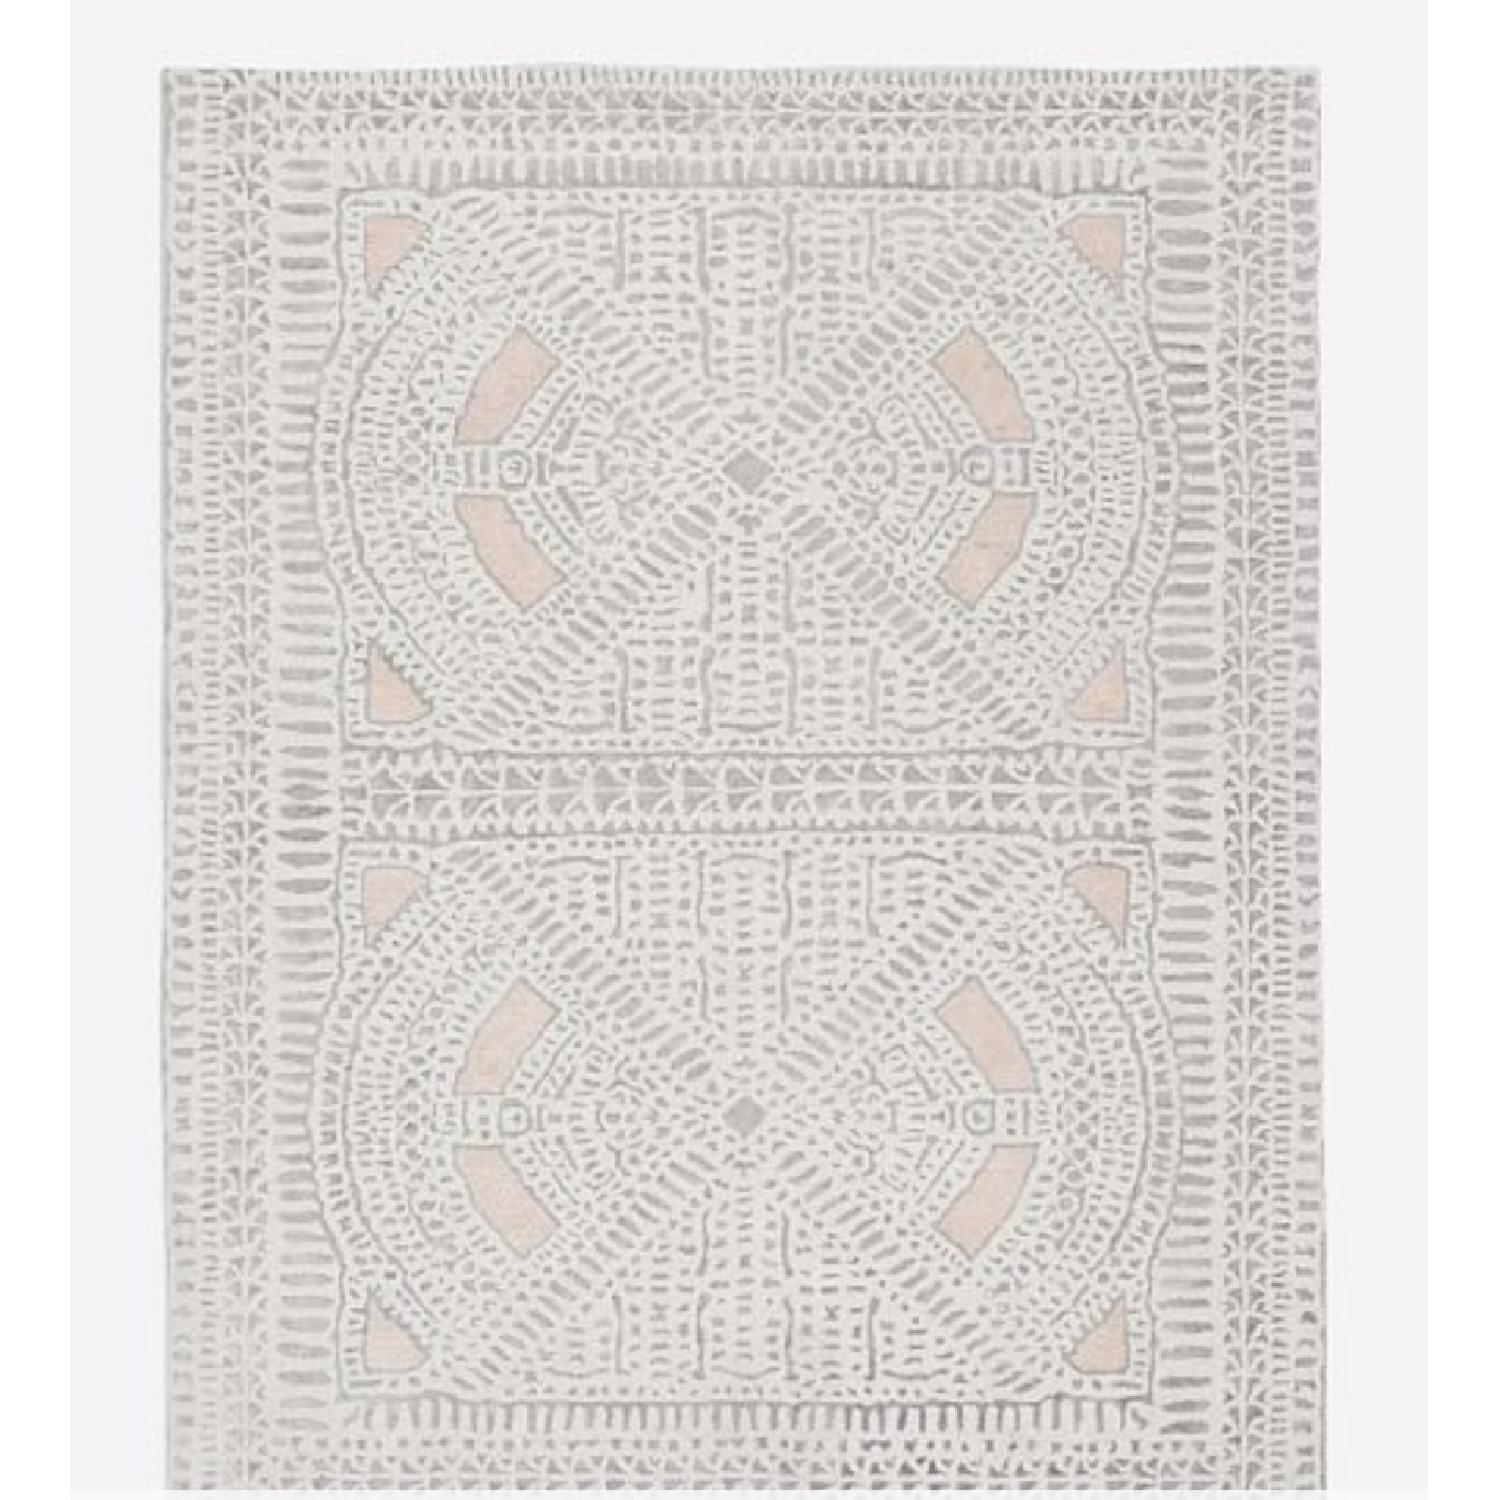 West Elm Dynasty Rug in Rosette